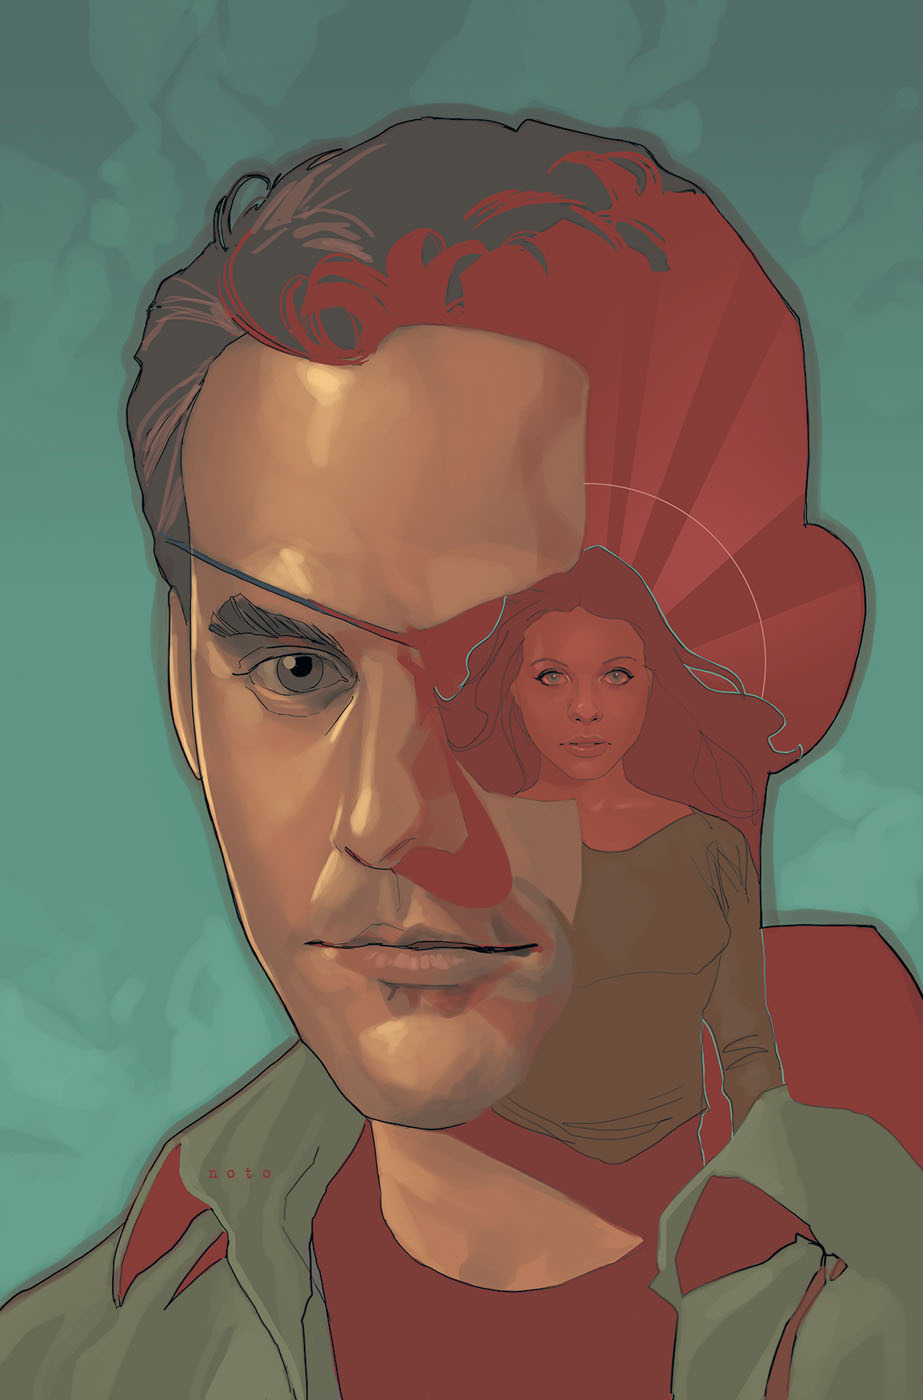 Art by Phil Noto.